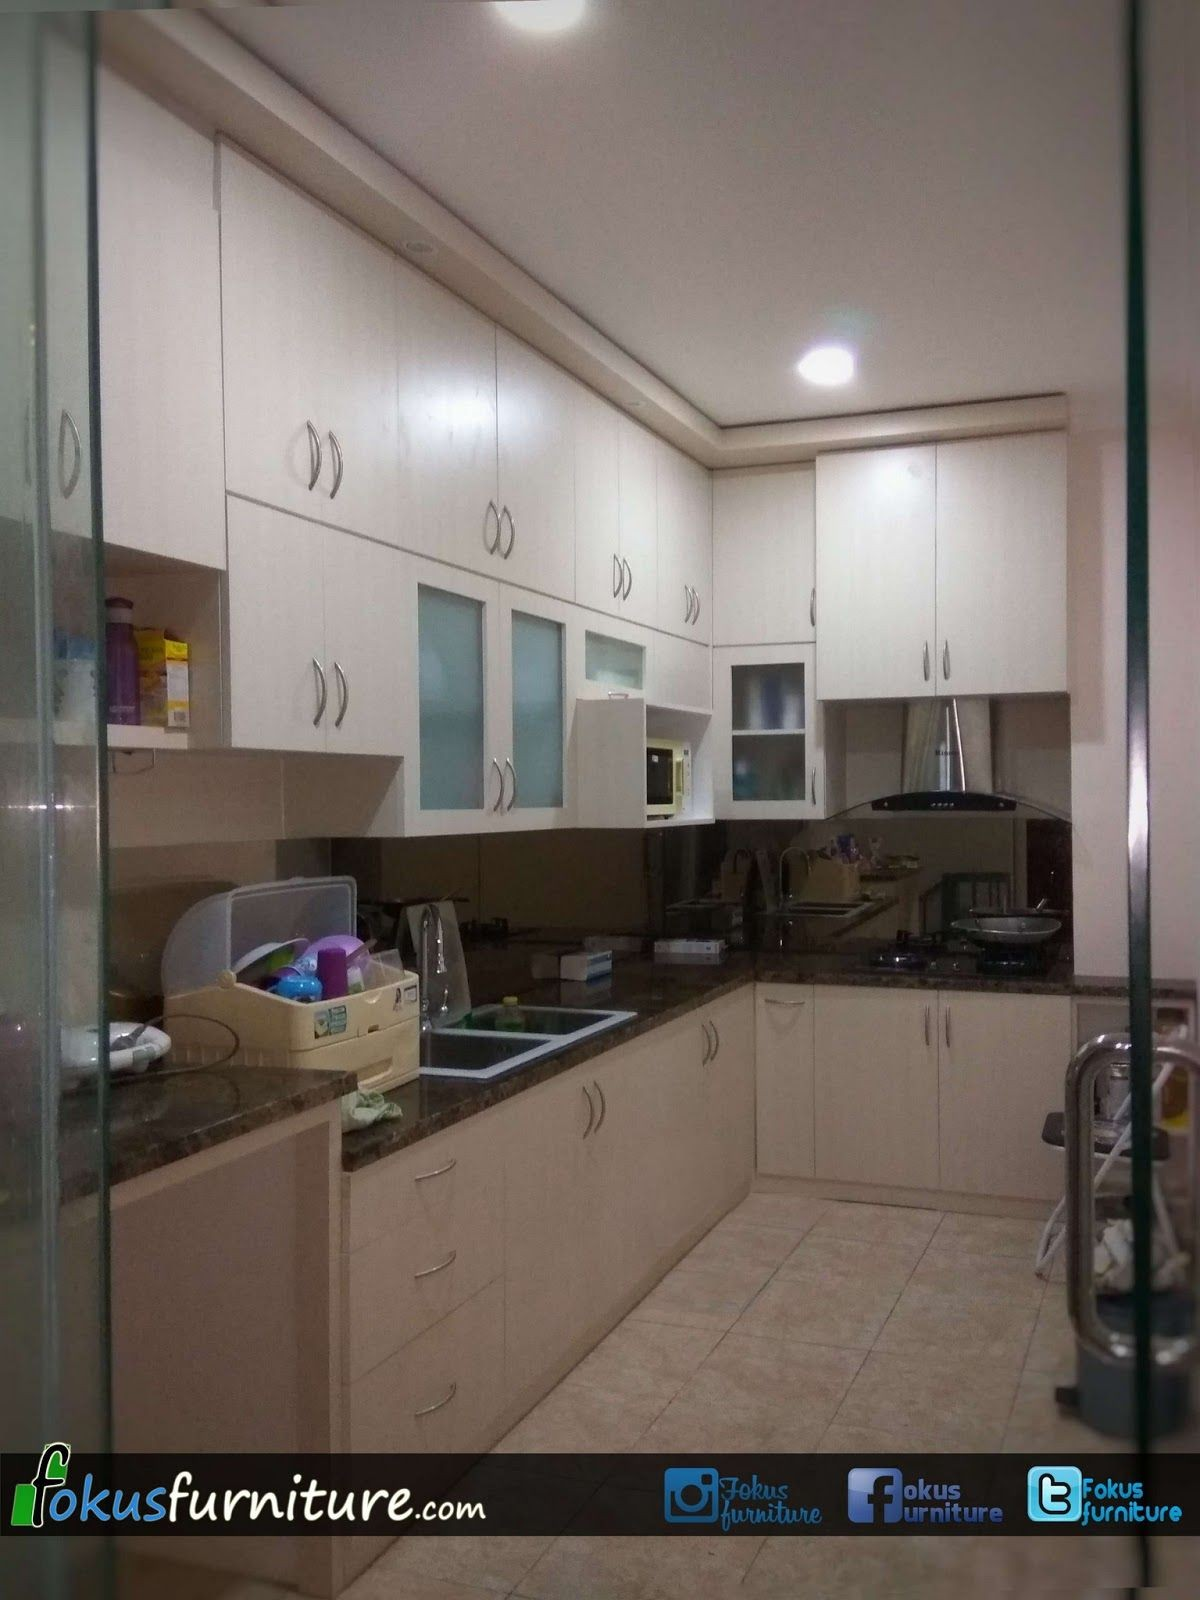 Desain kitchen set dapur paling indah untuk kitchen set finishing hpl